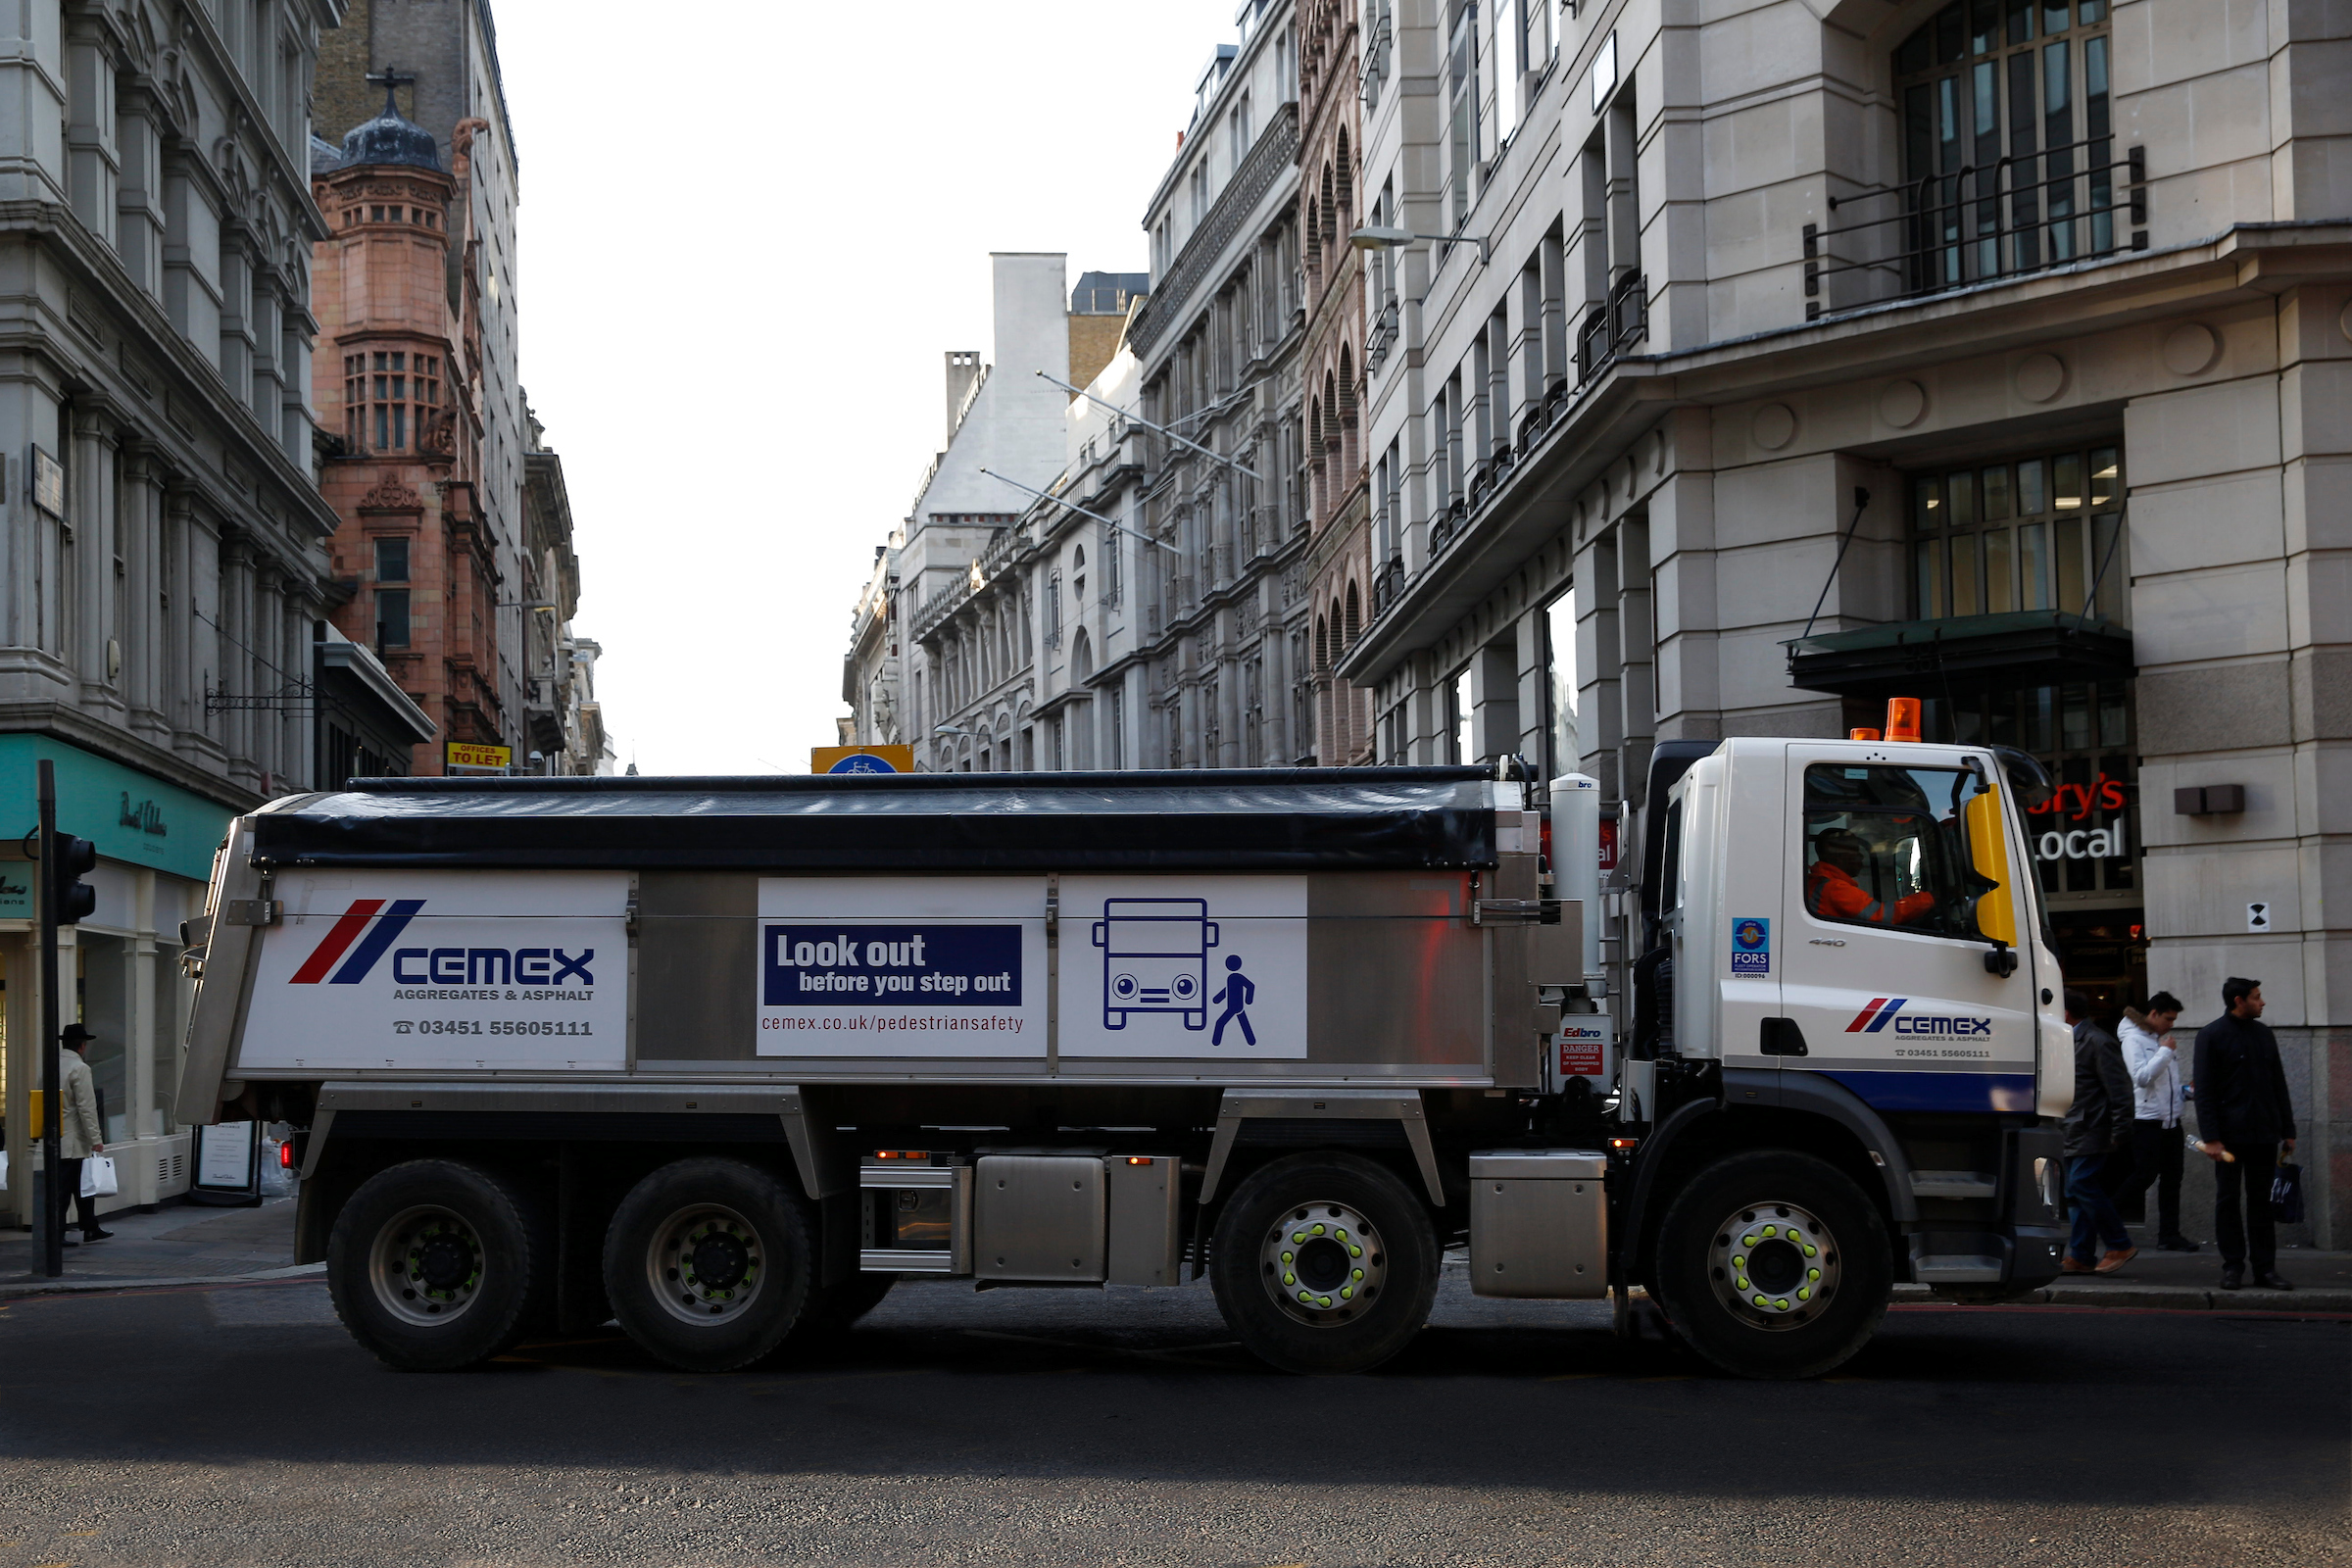 CEMEX UK announces new pedestrian safety campaign